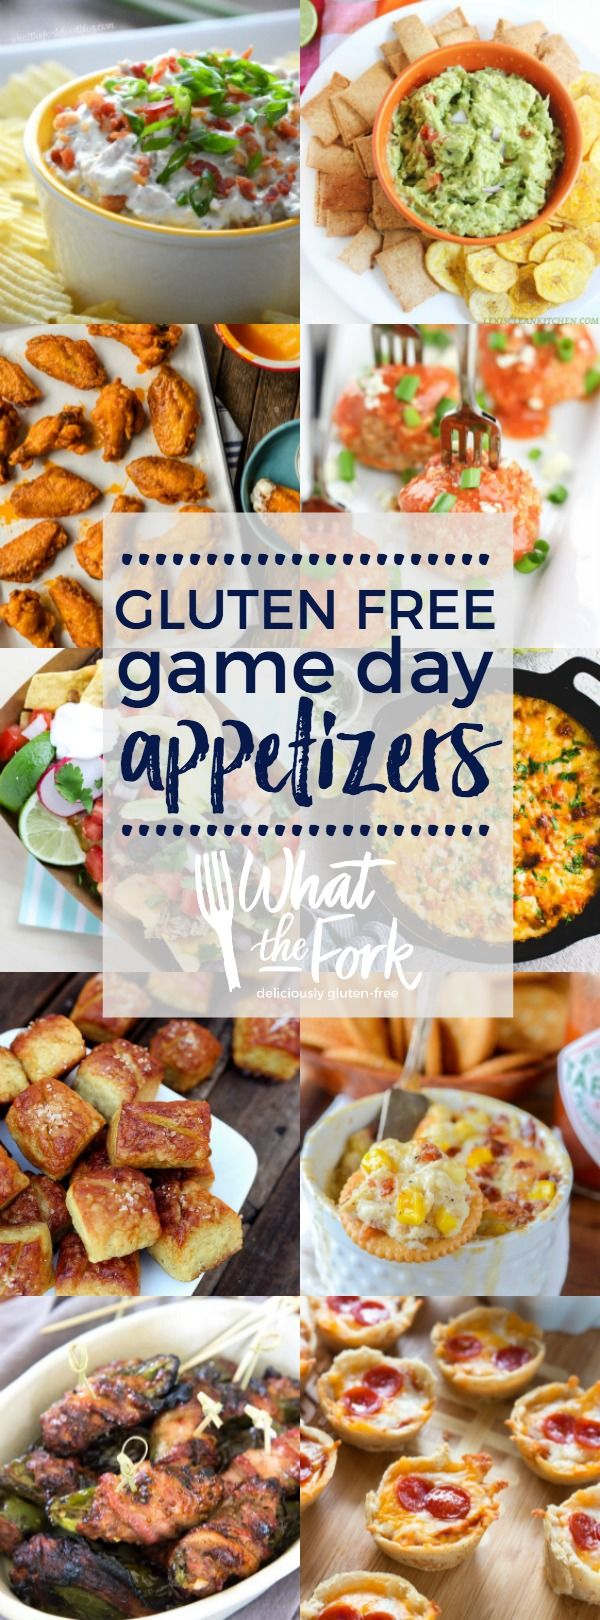 All the gluten free snacks and gluten free game day appetizers you need to get your party started!